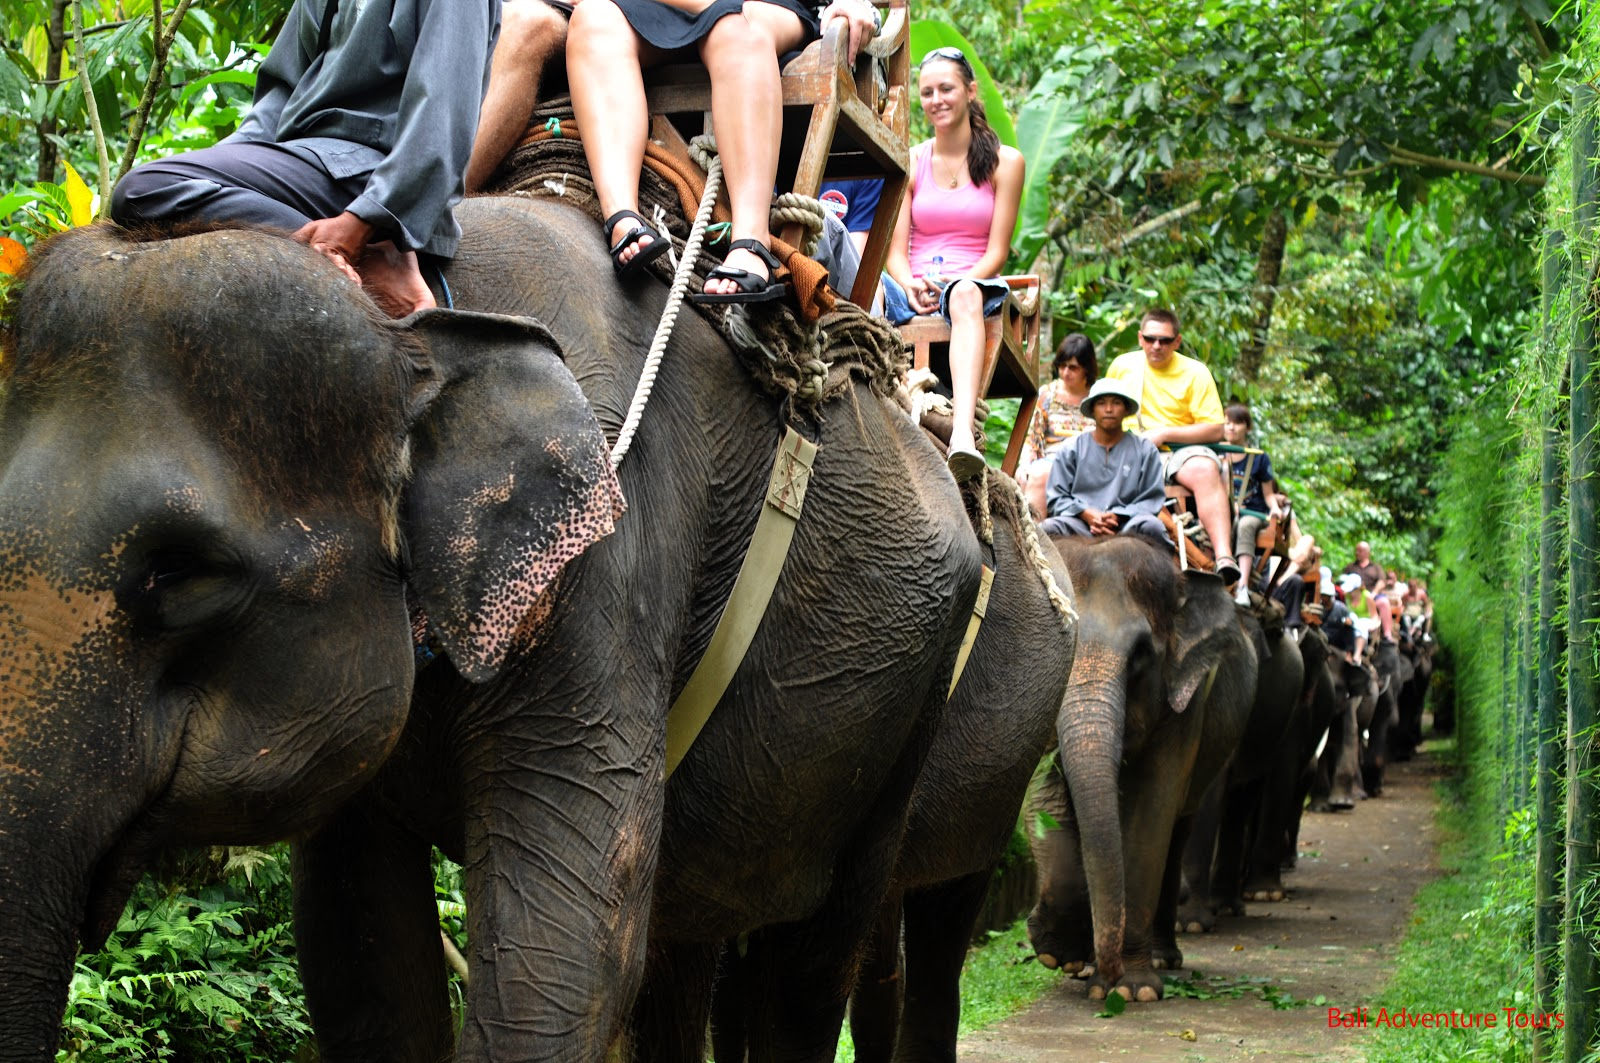 Great news: TripAdvisor stops selling tickets to many animal attractions